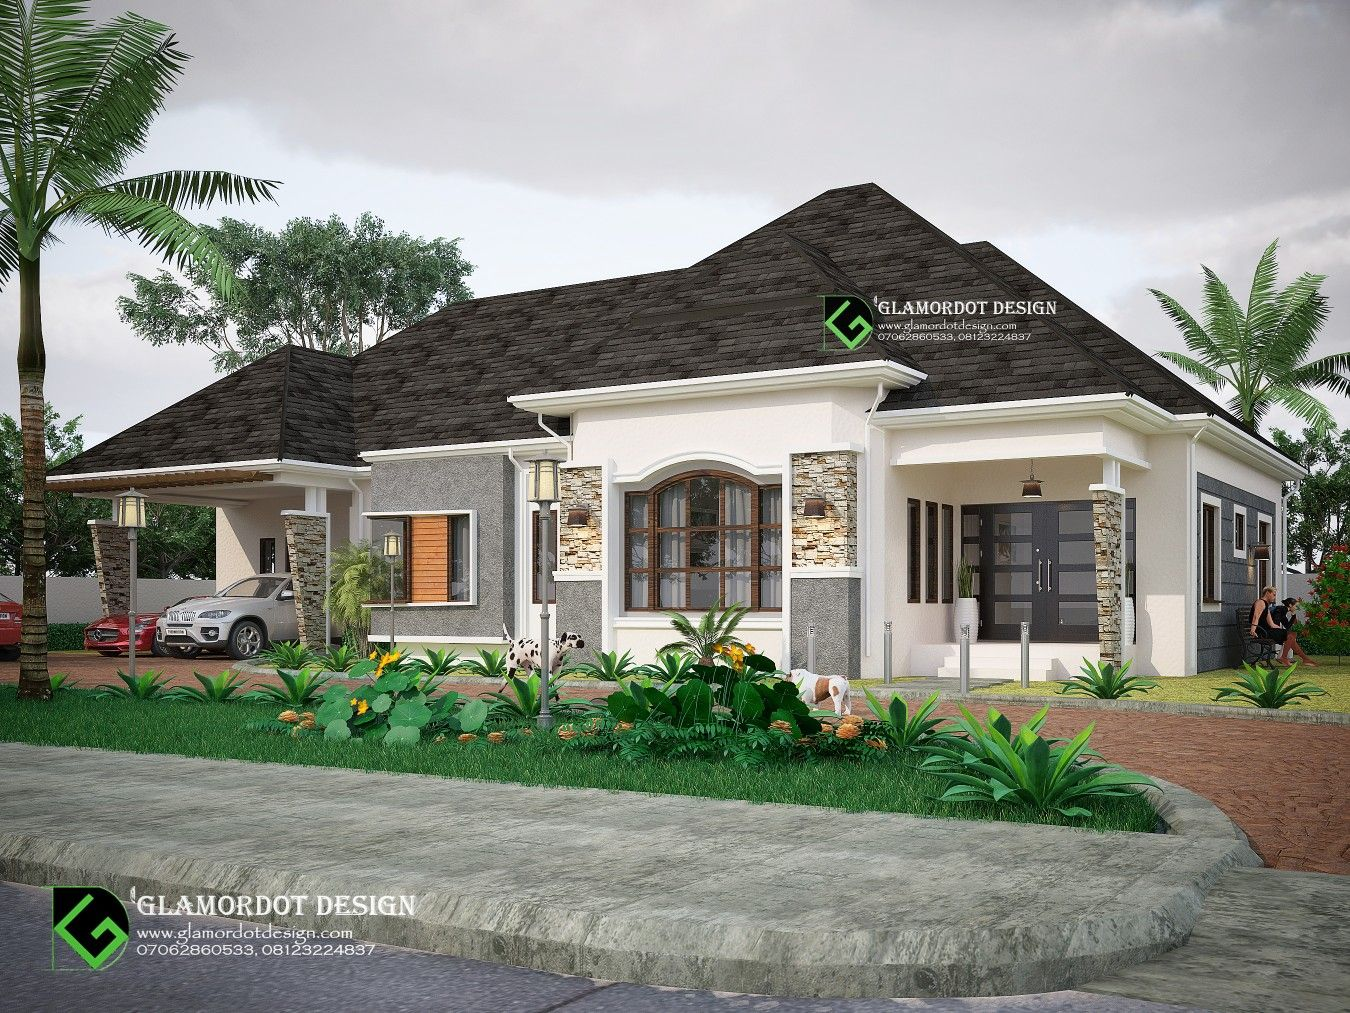 4 Bedroom Bungalow Design With A 2 Car Garage Attached For Inquiries Call 07062860533 Whatsapp Bungalow Design Beautiful House Plans Bungalow House Design